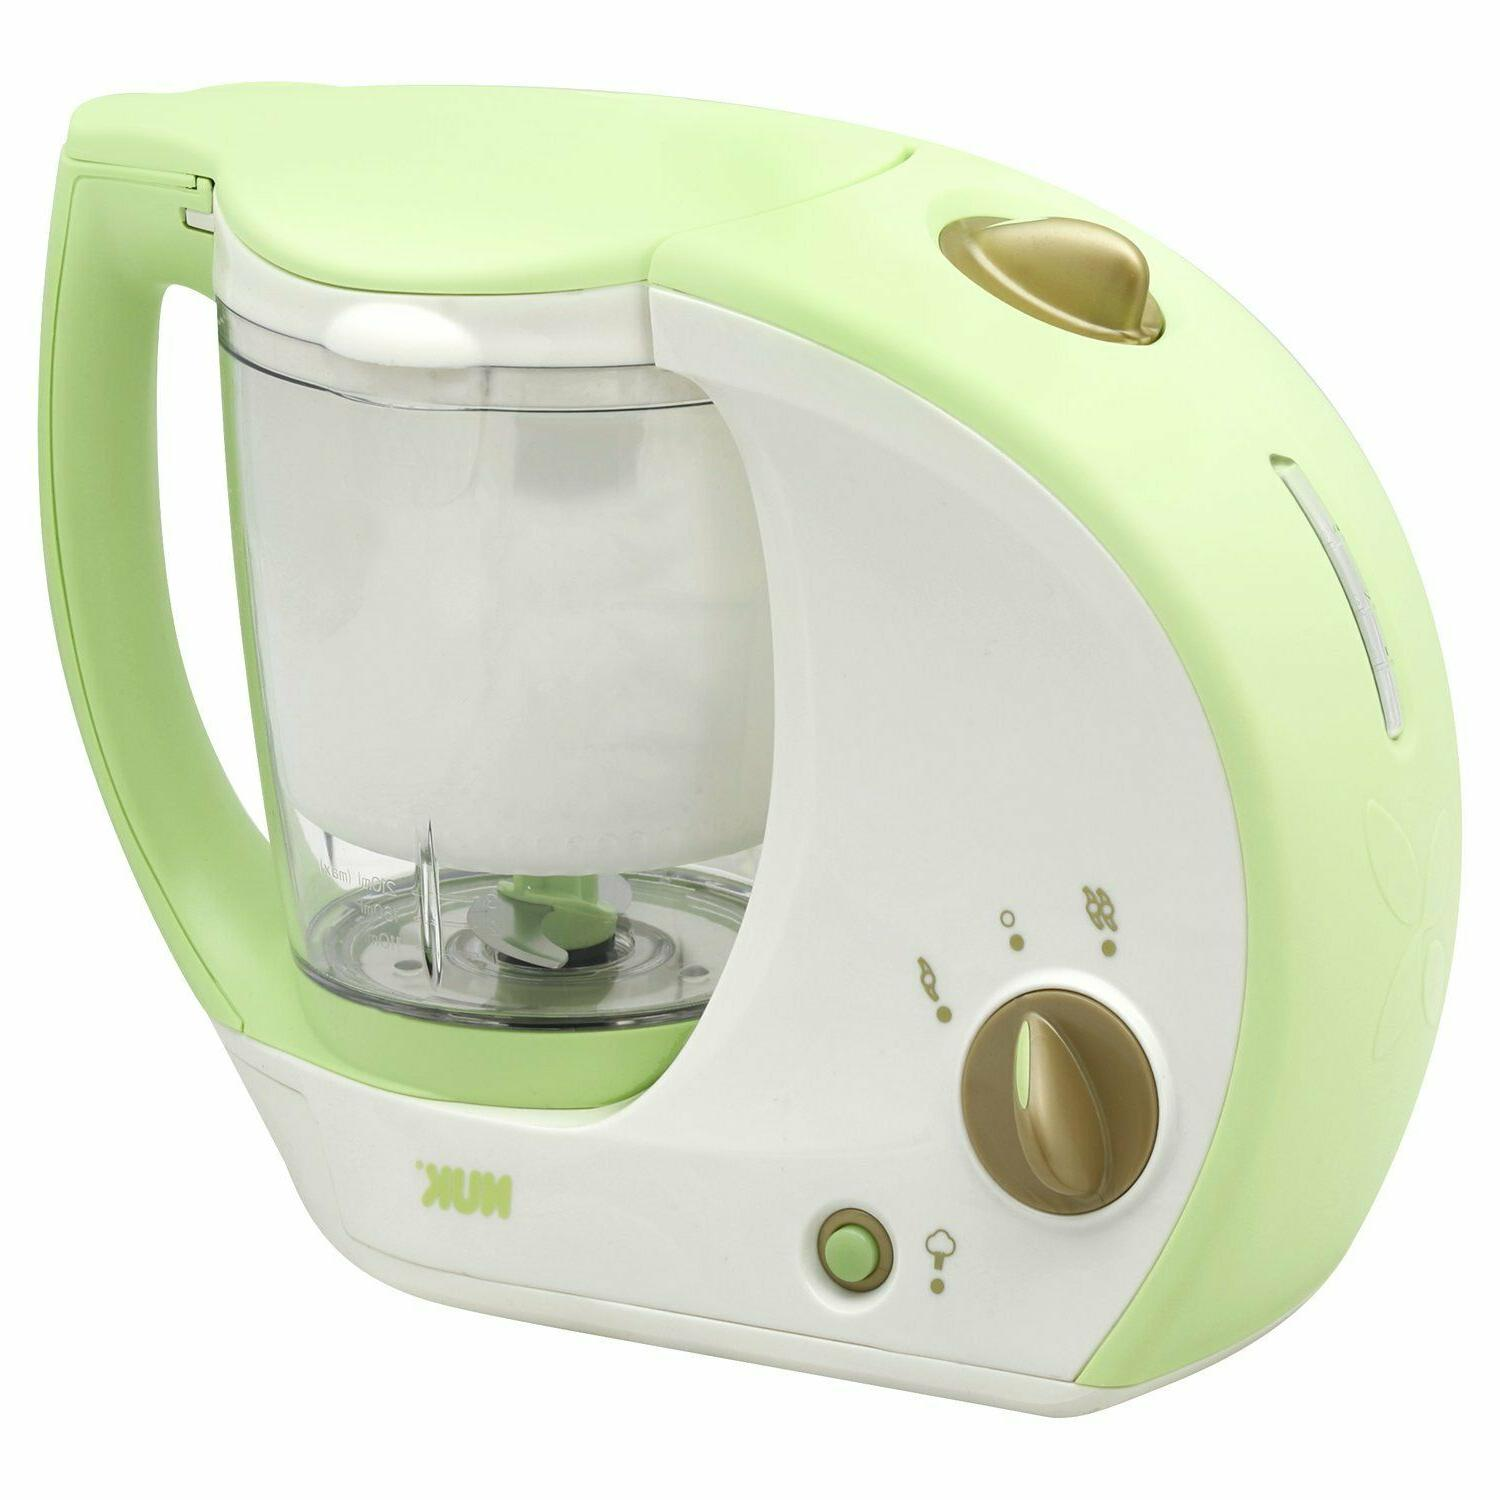 NEW in NUK Fresh Cook Blend Maker by Annabel